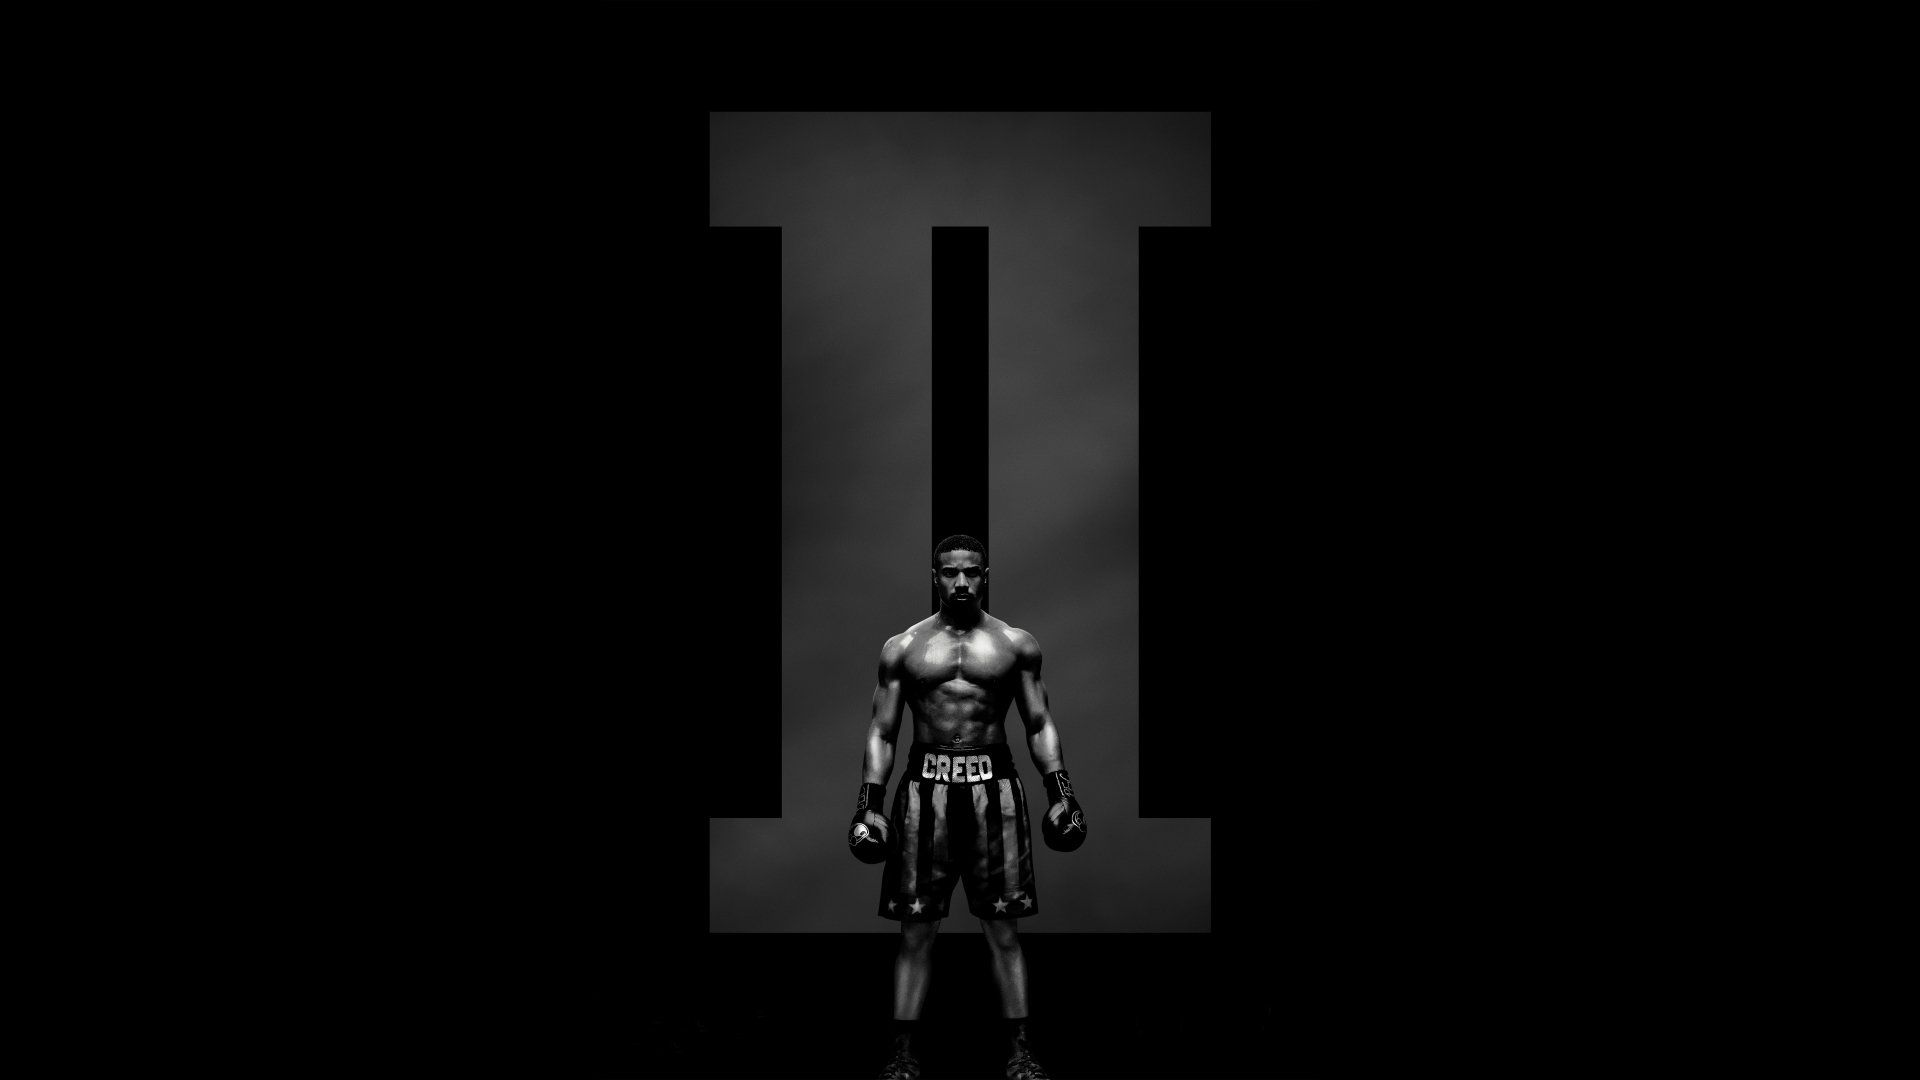 1920x1080 10 Creed II HD Wallpapers   Background Images - Wallpaper Abyss